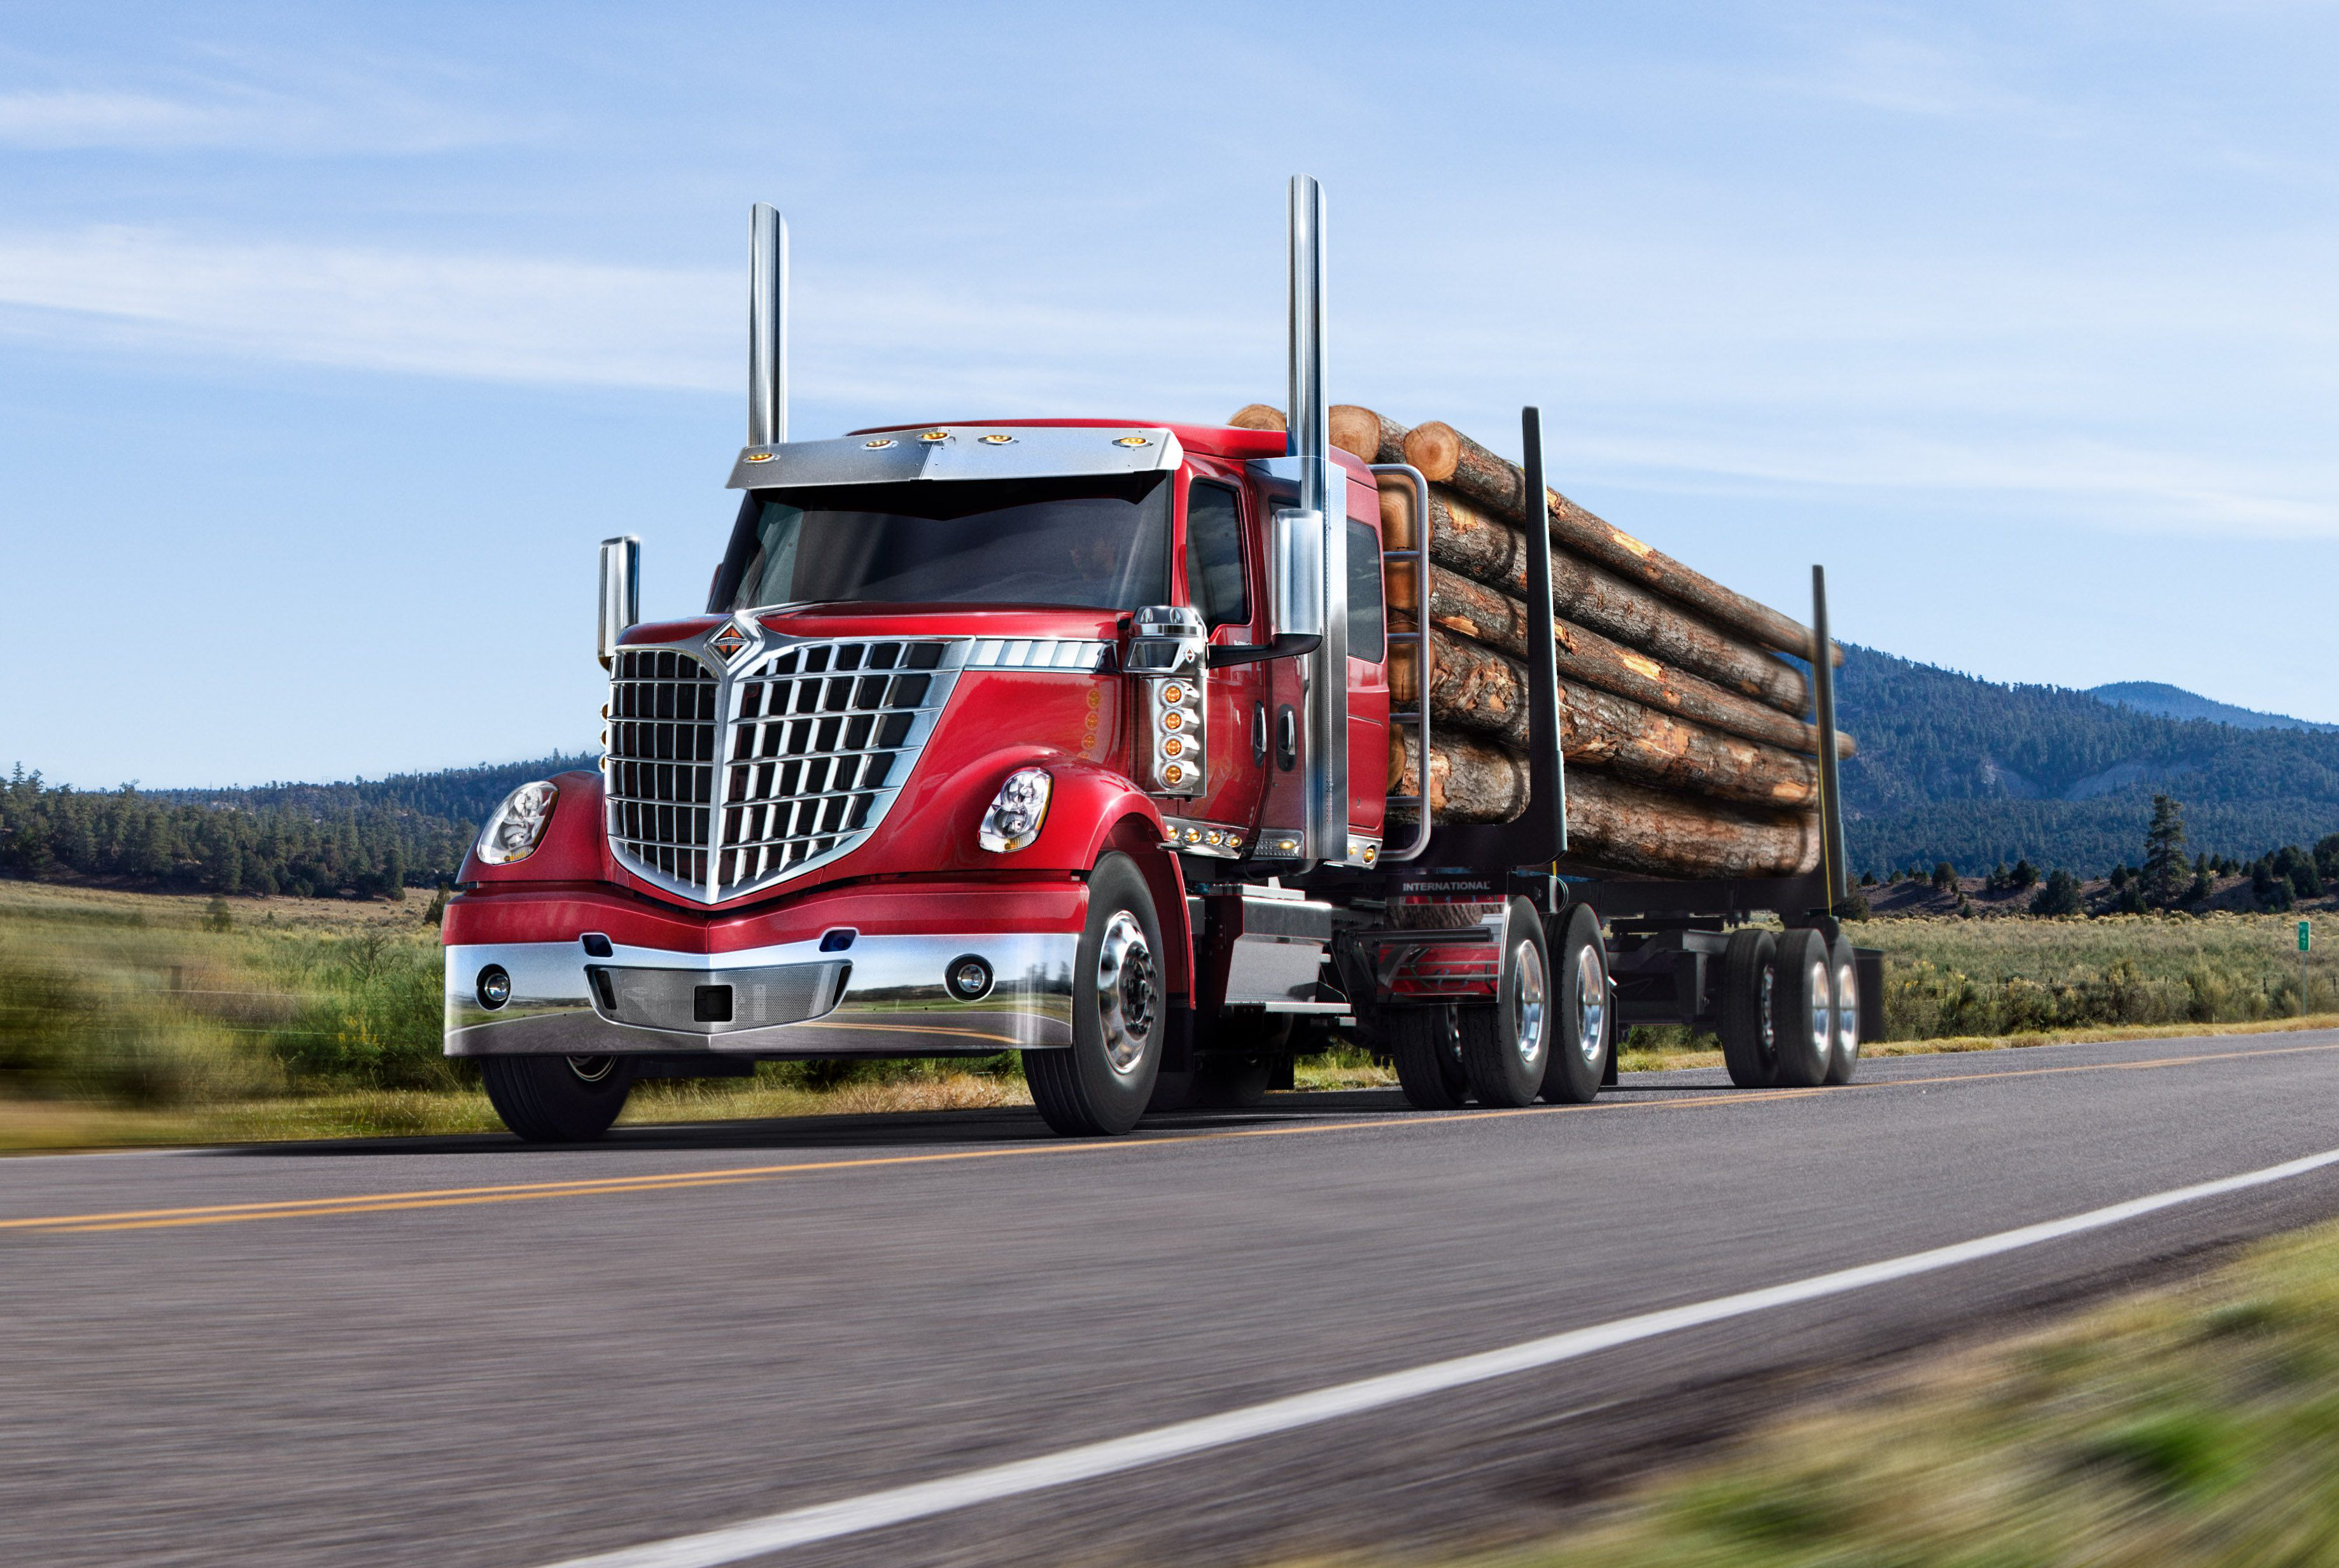 MIXED FLEET MAINTENANCE: CHOOSE THE RIGHT DIESEL FUEL TO MAXIMIZE UPTIME